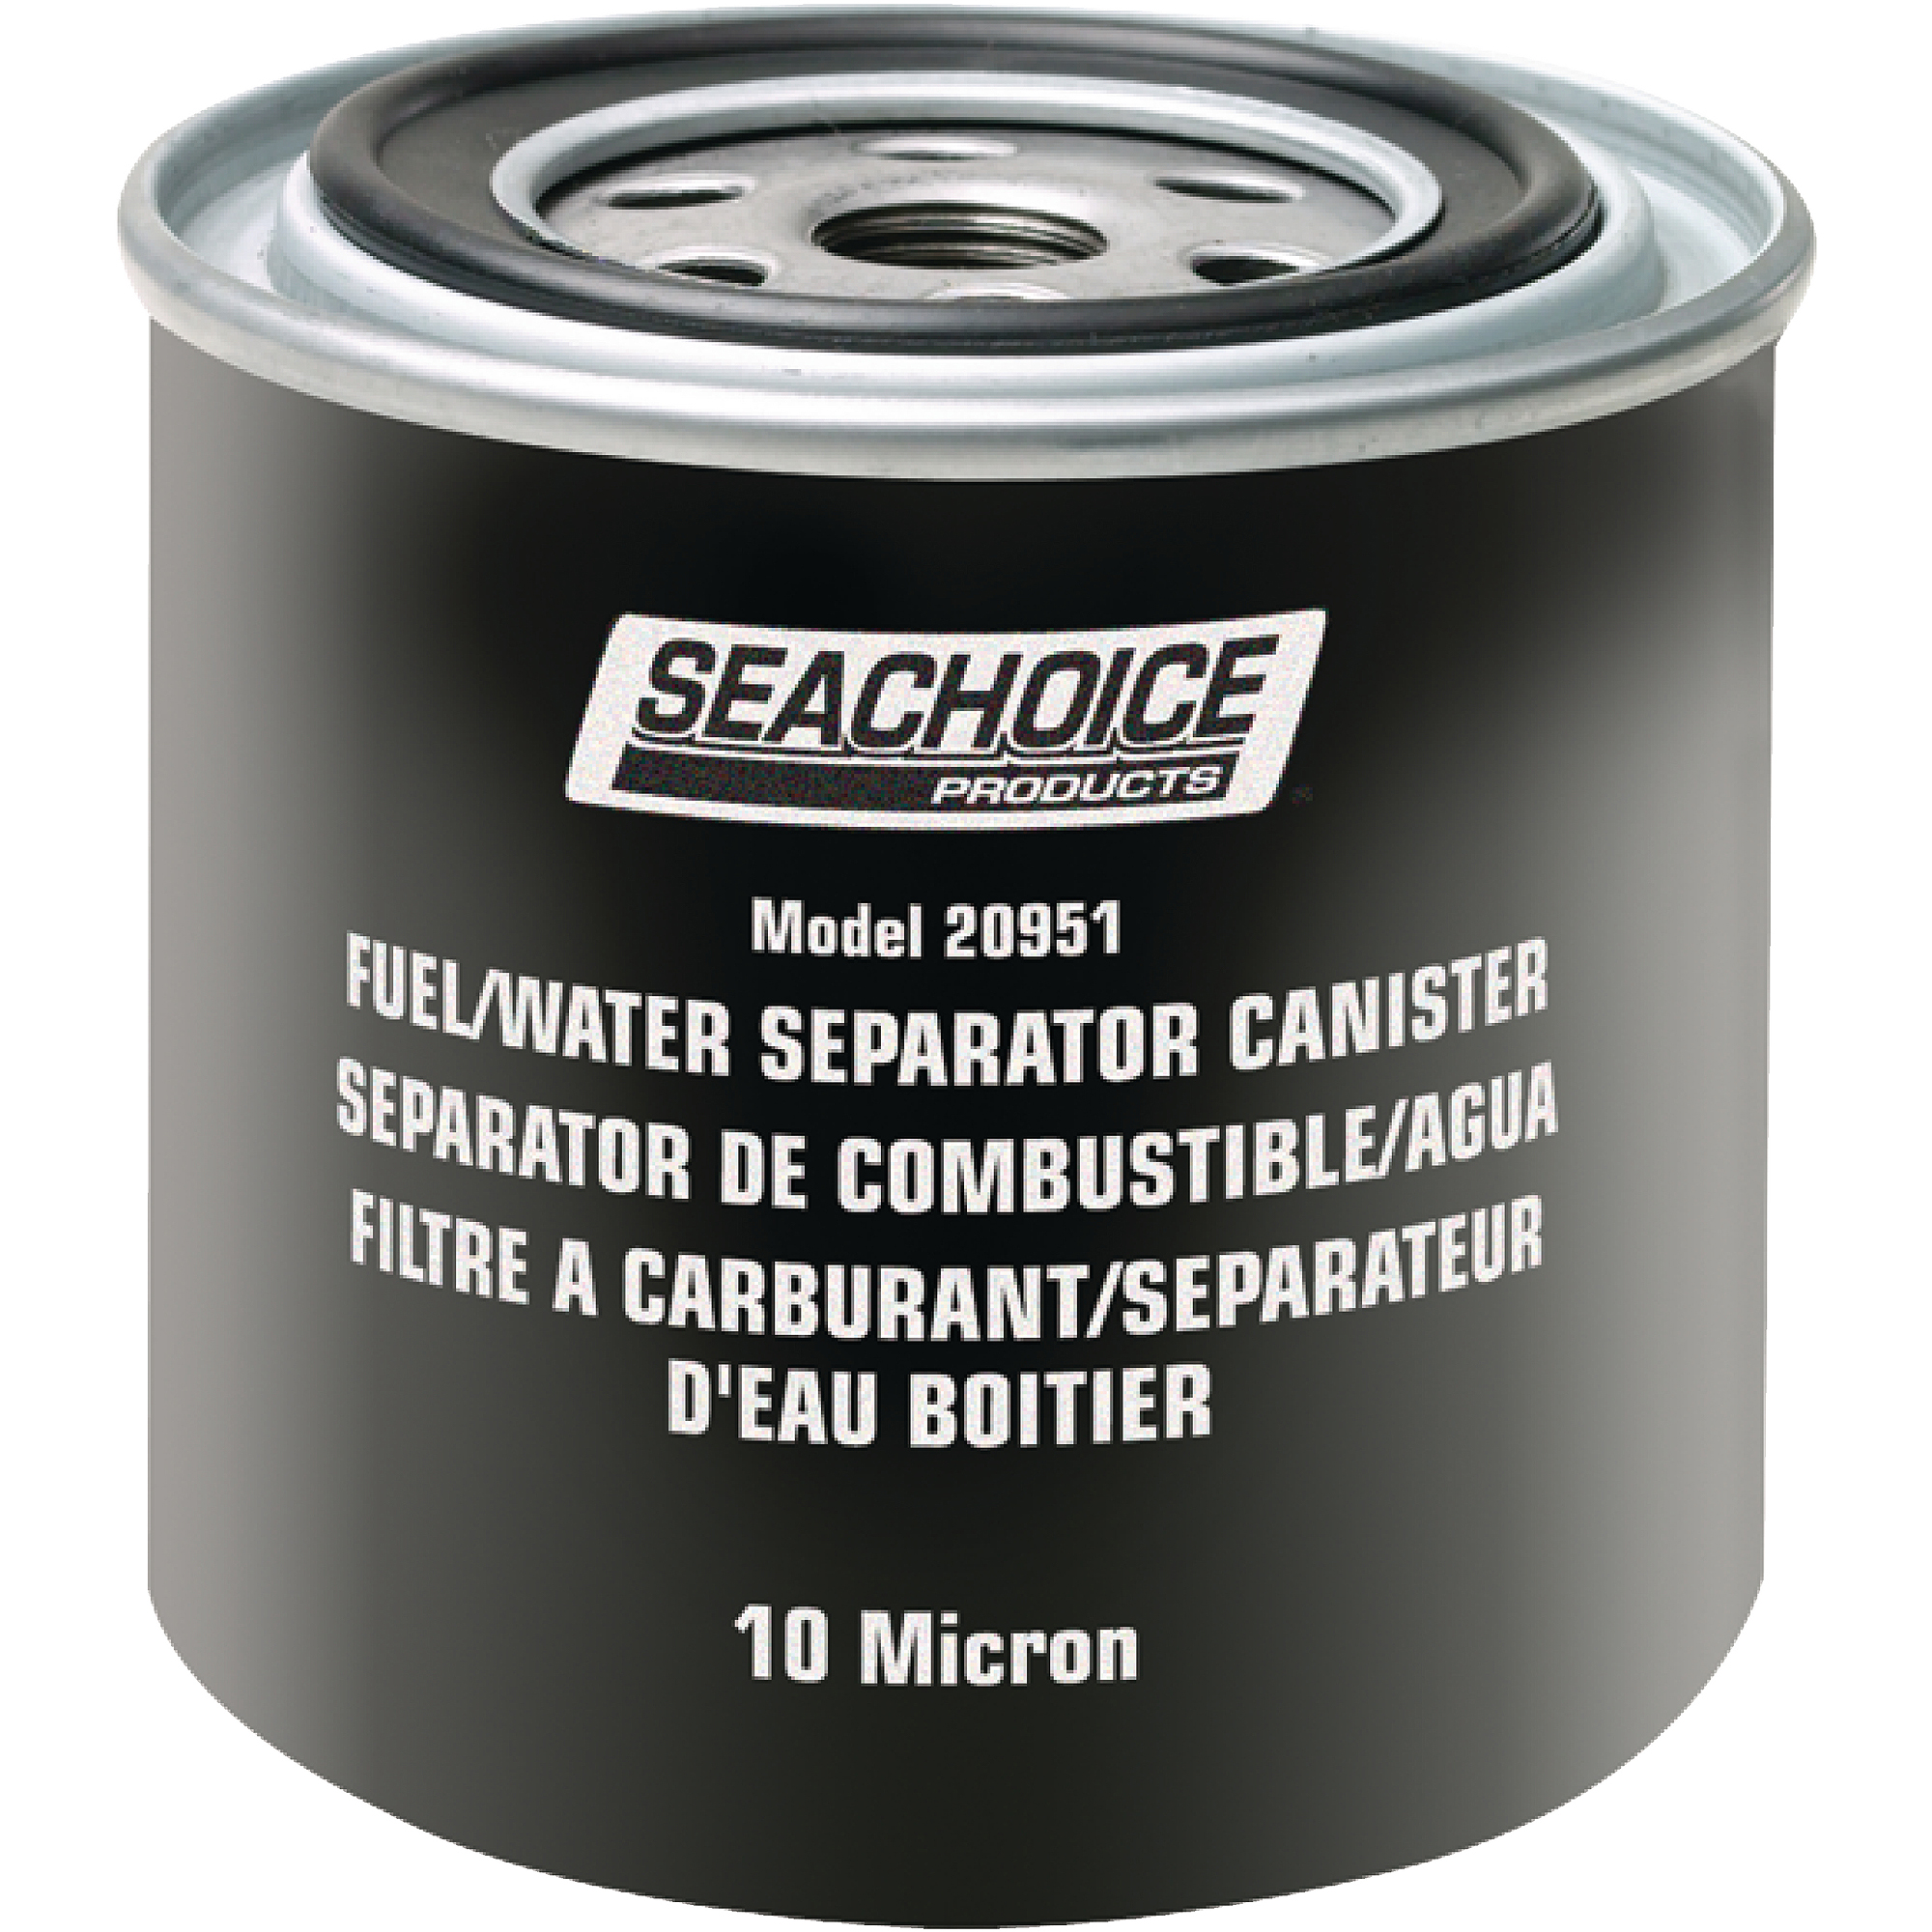 Seachoice Fuel Filter Wiring Library Diagram